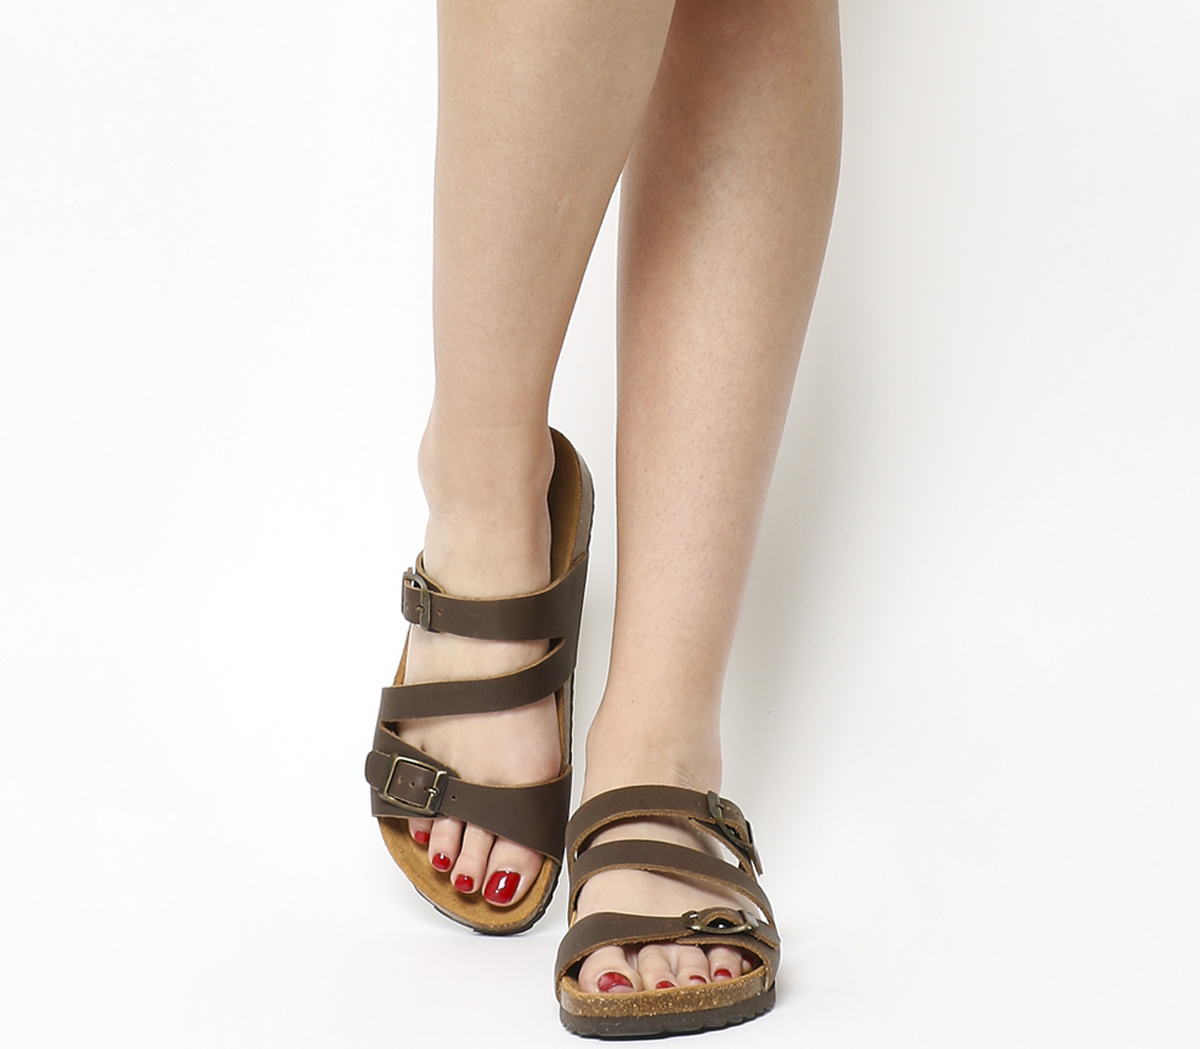 5ca4b0ae60245 Details about Womens Office Bounty Cross Strap Footbed Sandals Brown  Leather Sandals